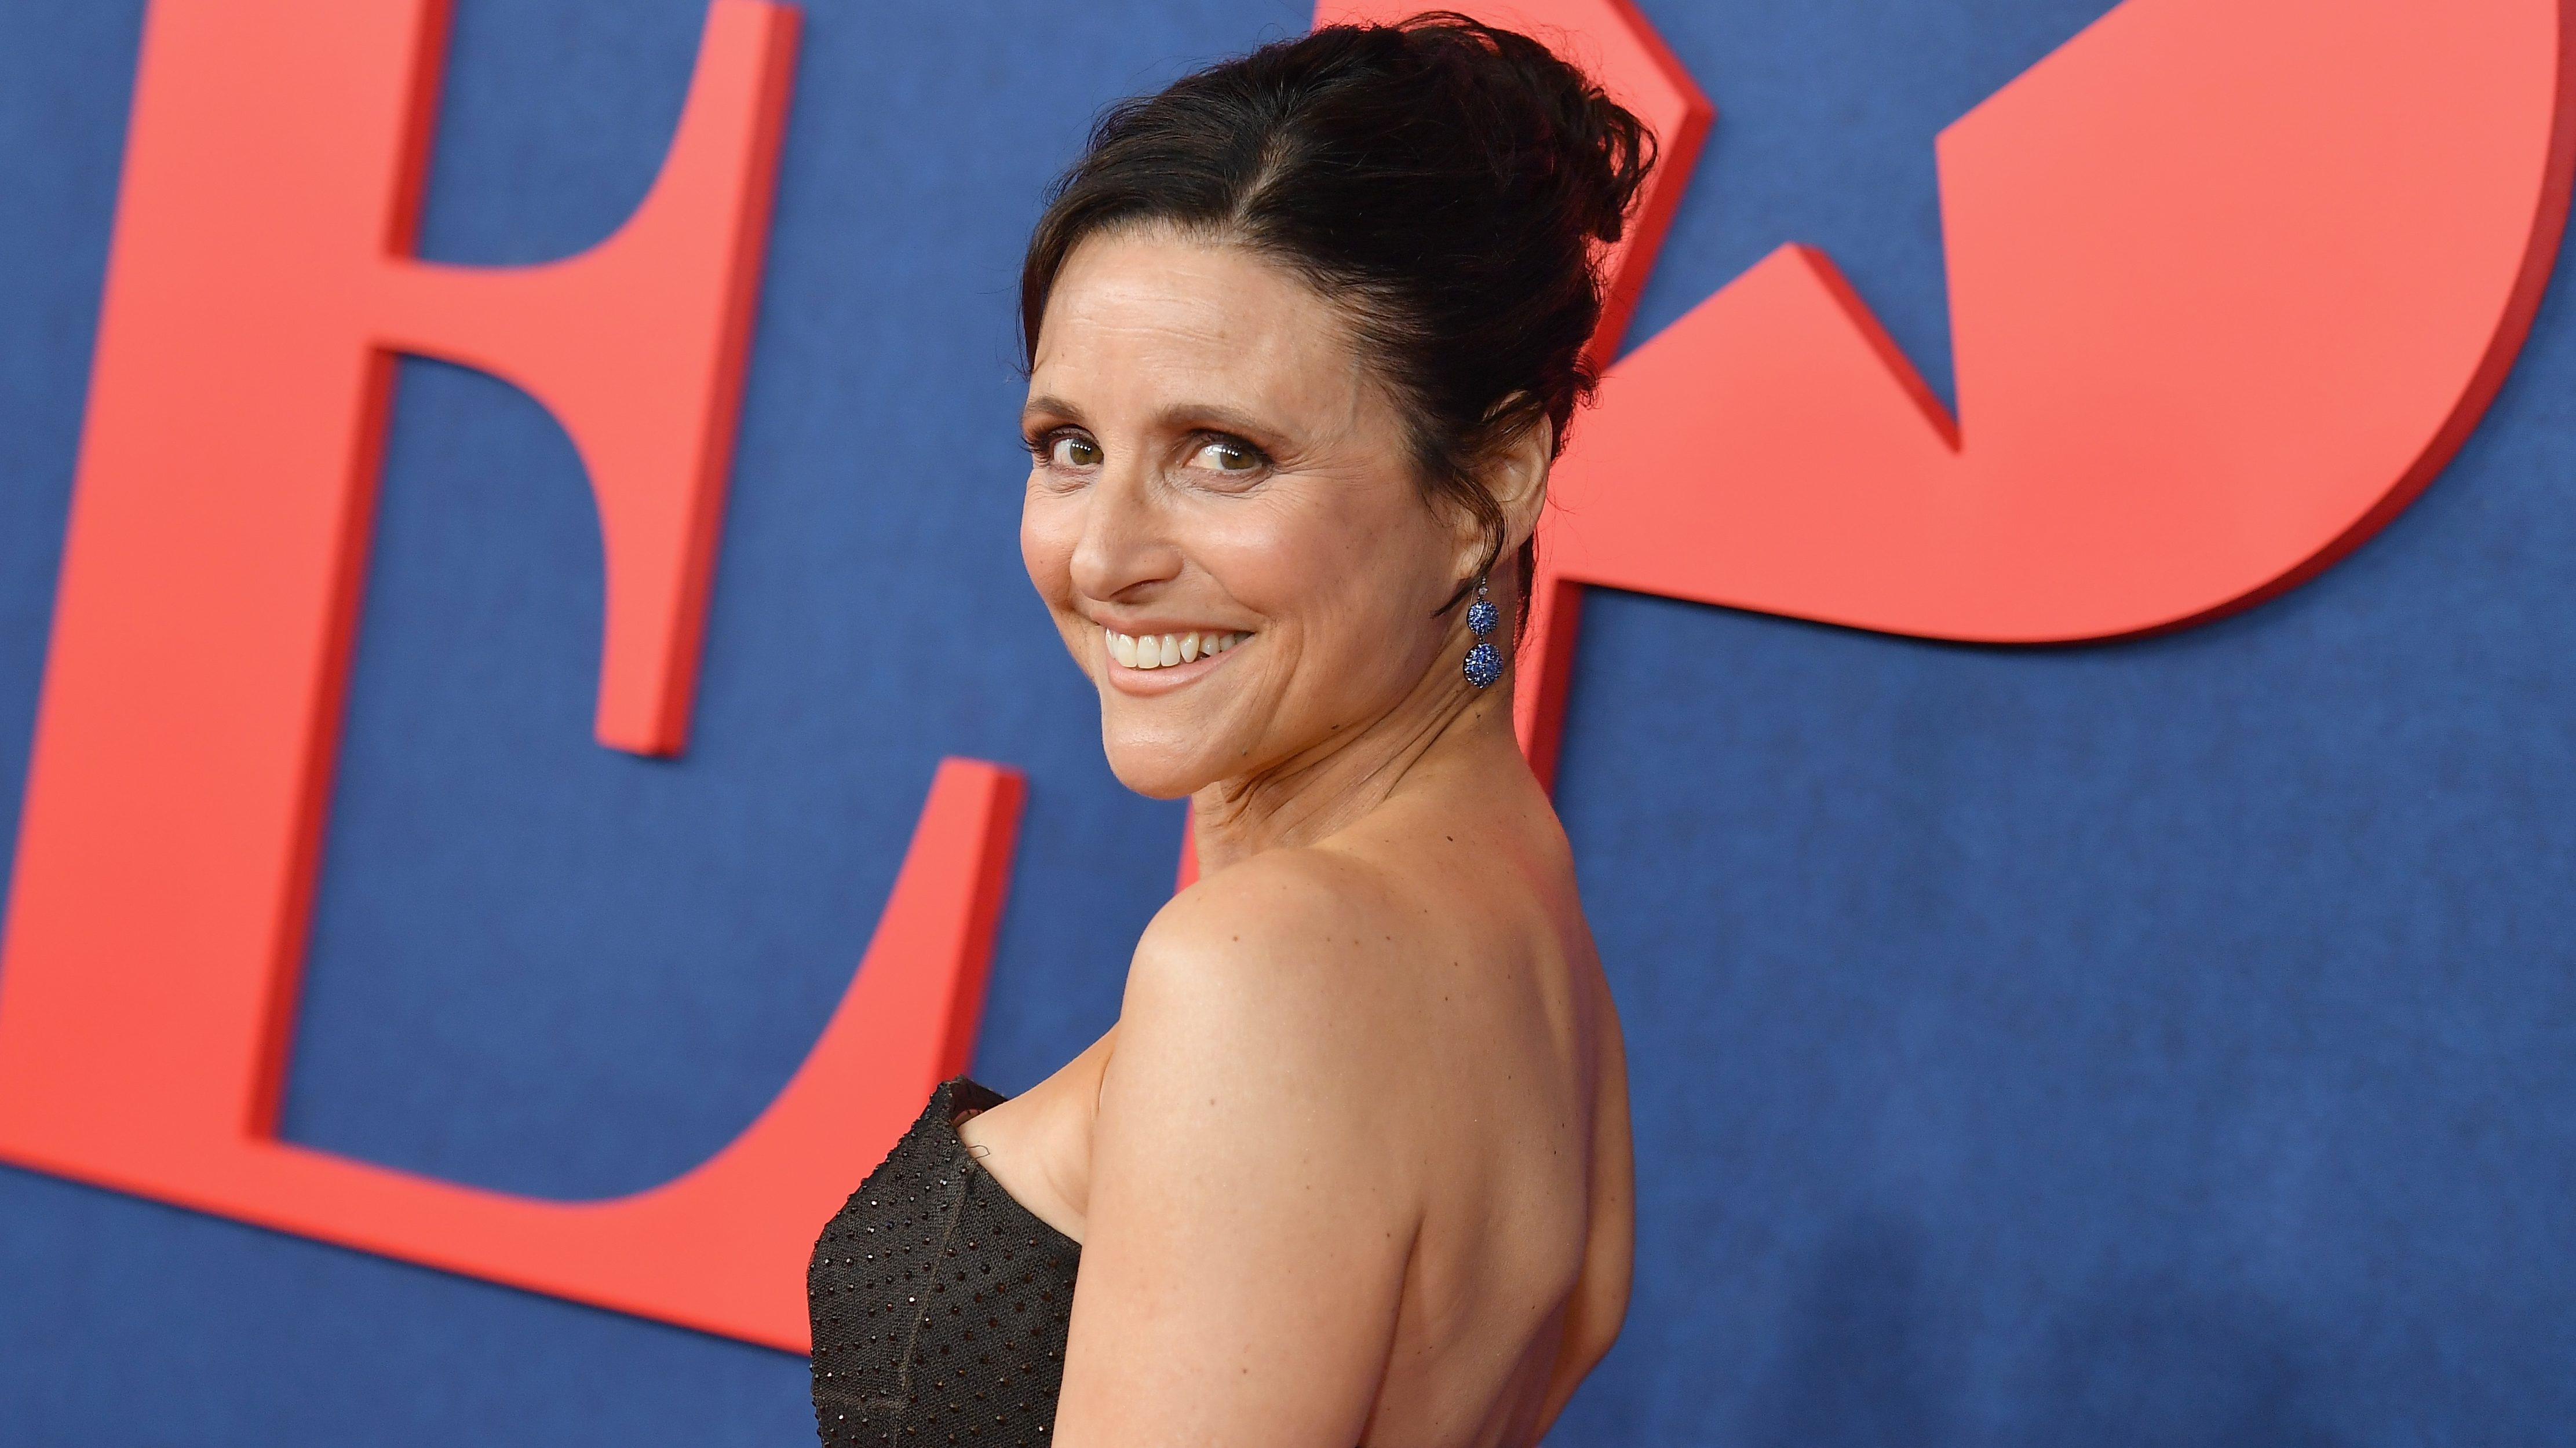 Julia Louis Dreyfus Snl Was Not A Happy Experience For Me